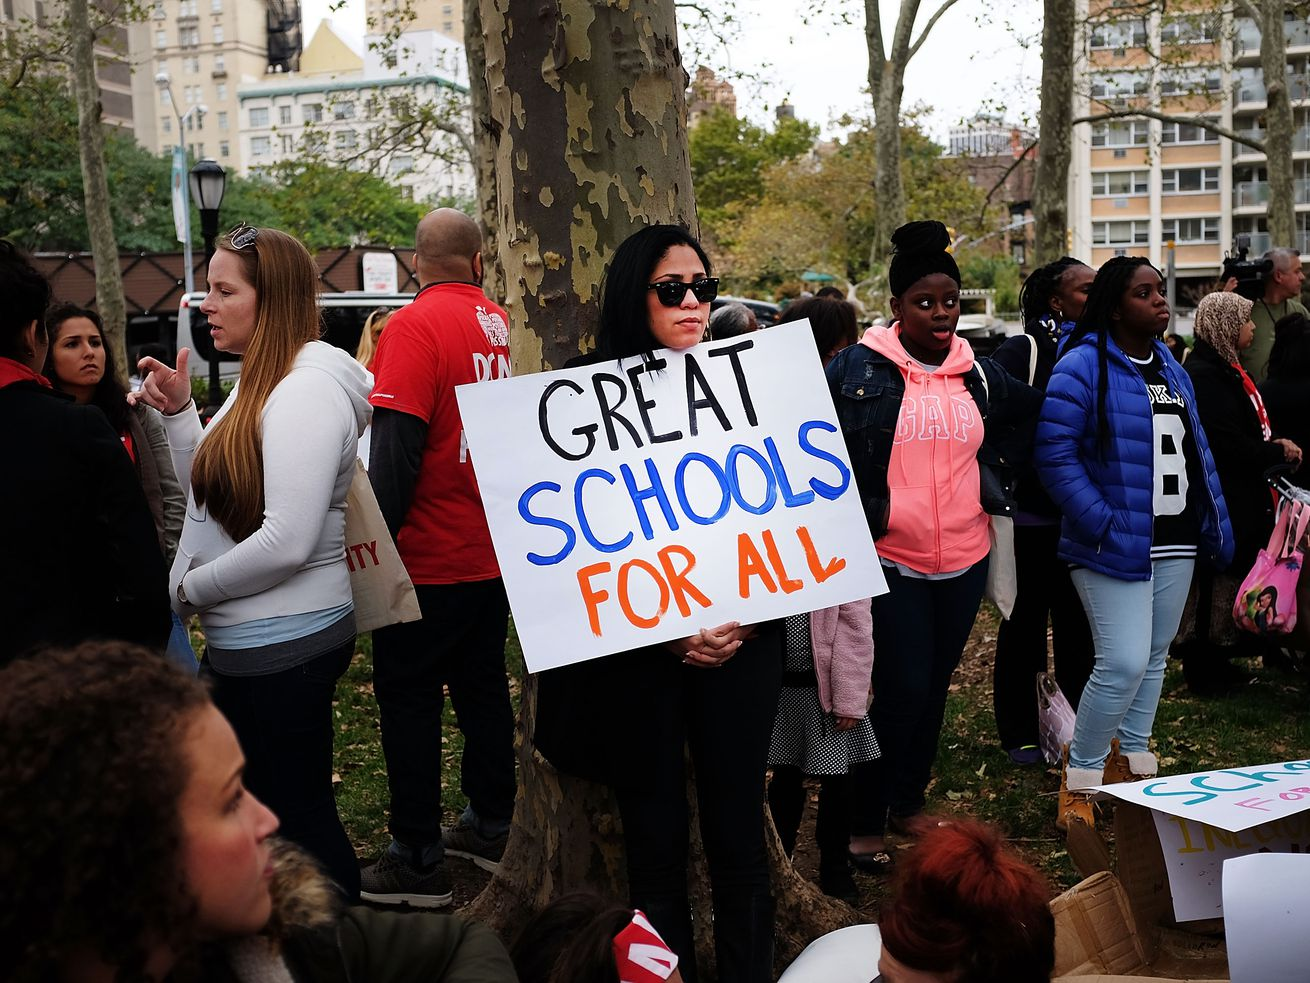 A rally protesting unequal education in New York City schools on October 7, 2015.